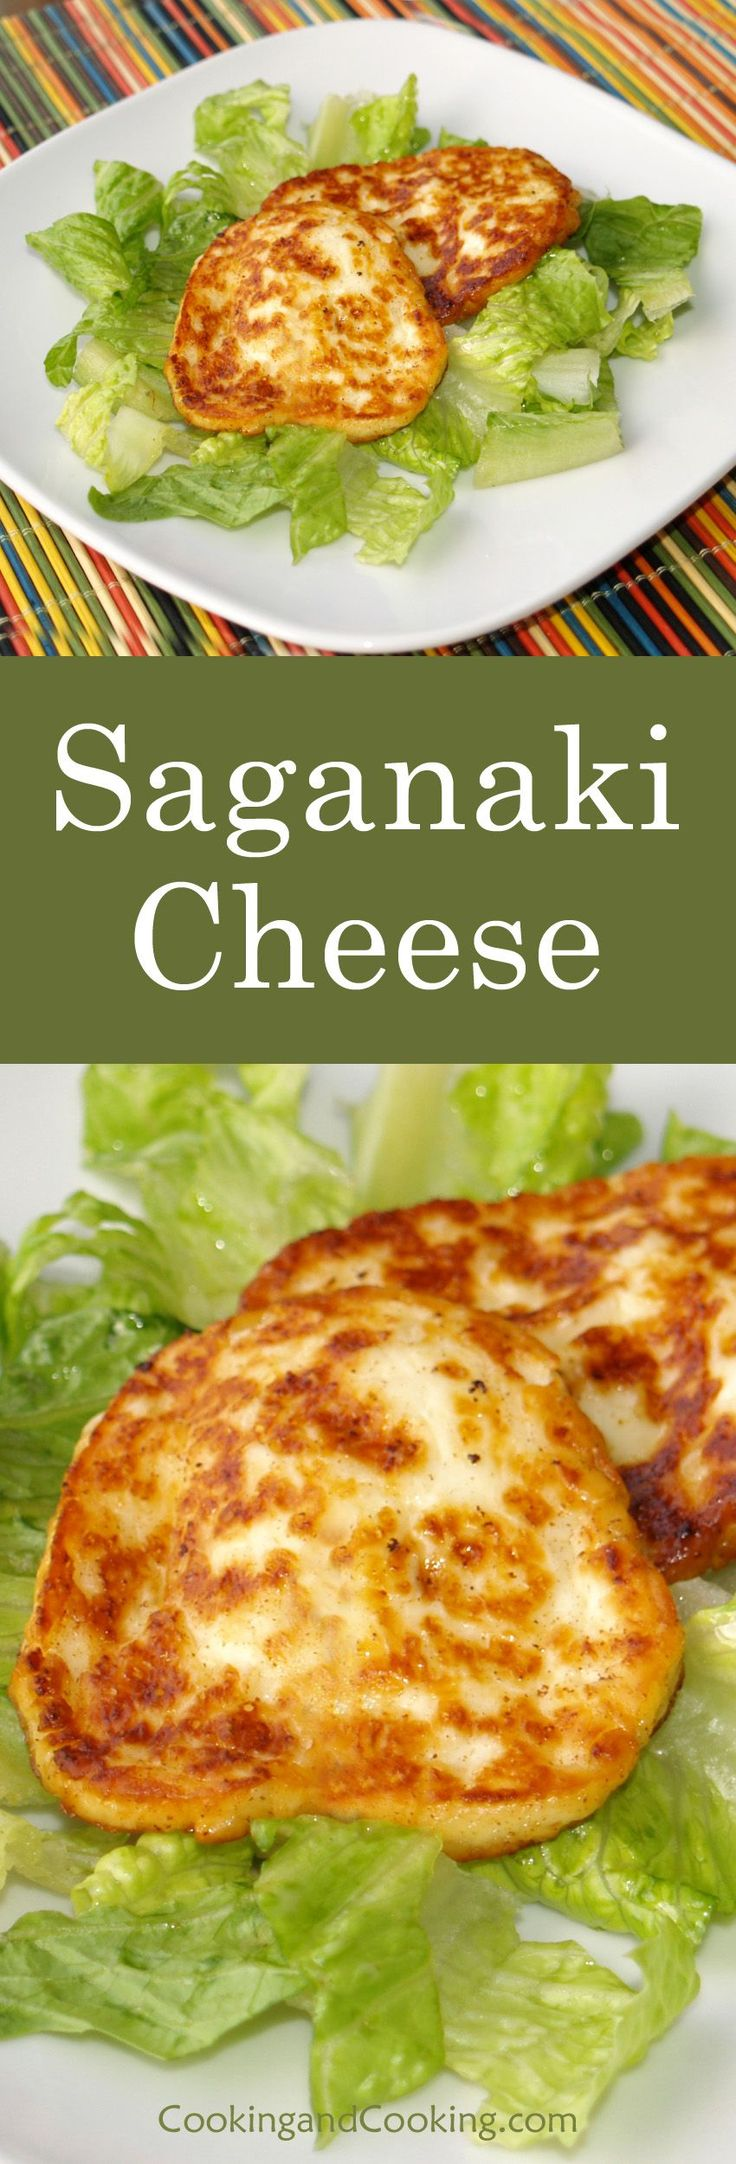 Saganaki Cheese is a simple Greek appetizer, which is made by frying cheese. Saganaki is a tasty recipe for cheese that can be made with any kind of hard cheeses like Halloumi, kasseri and kefalotyri.